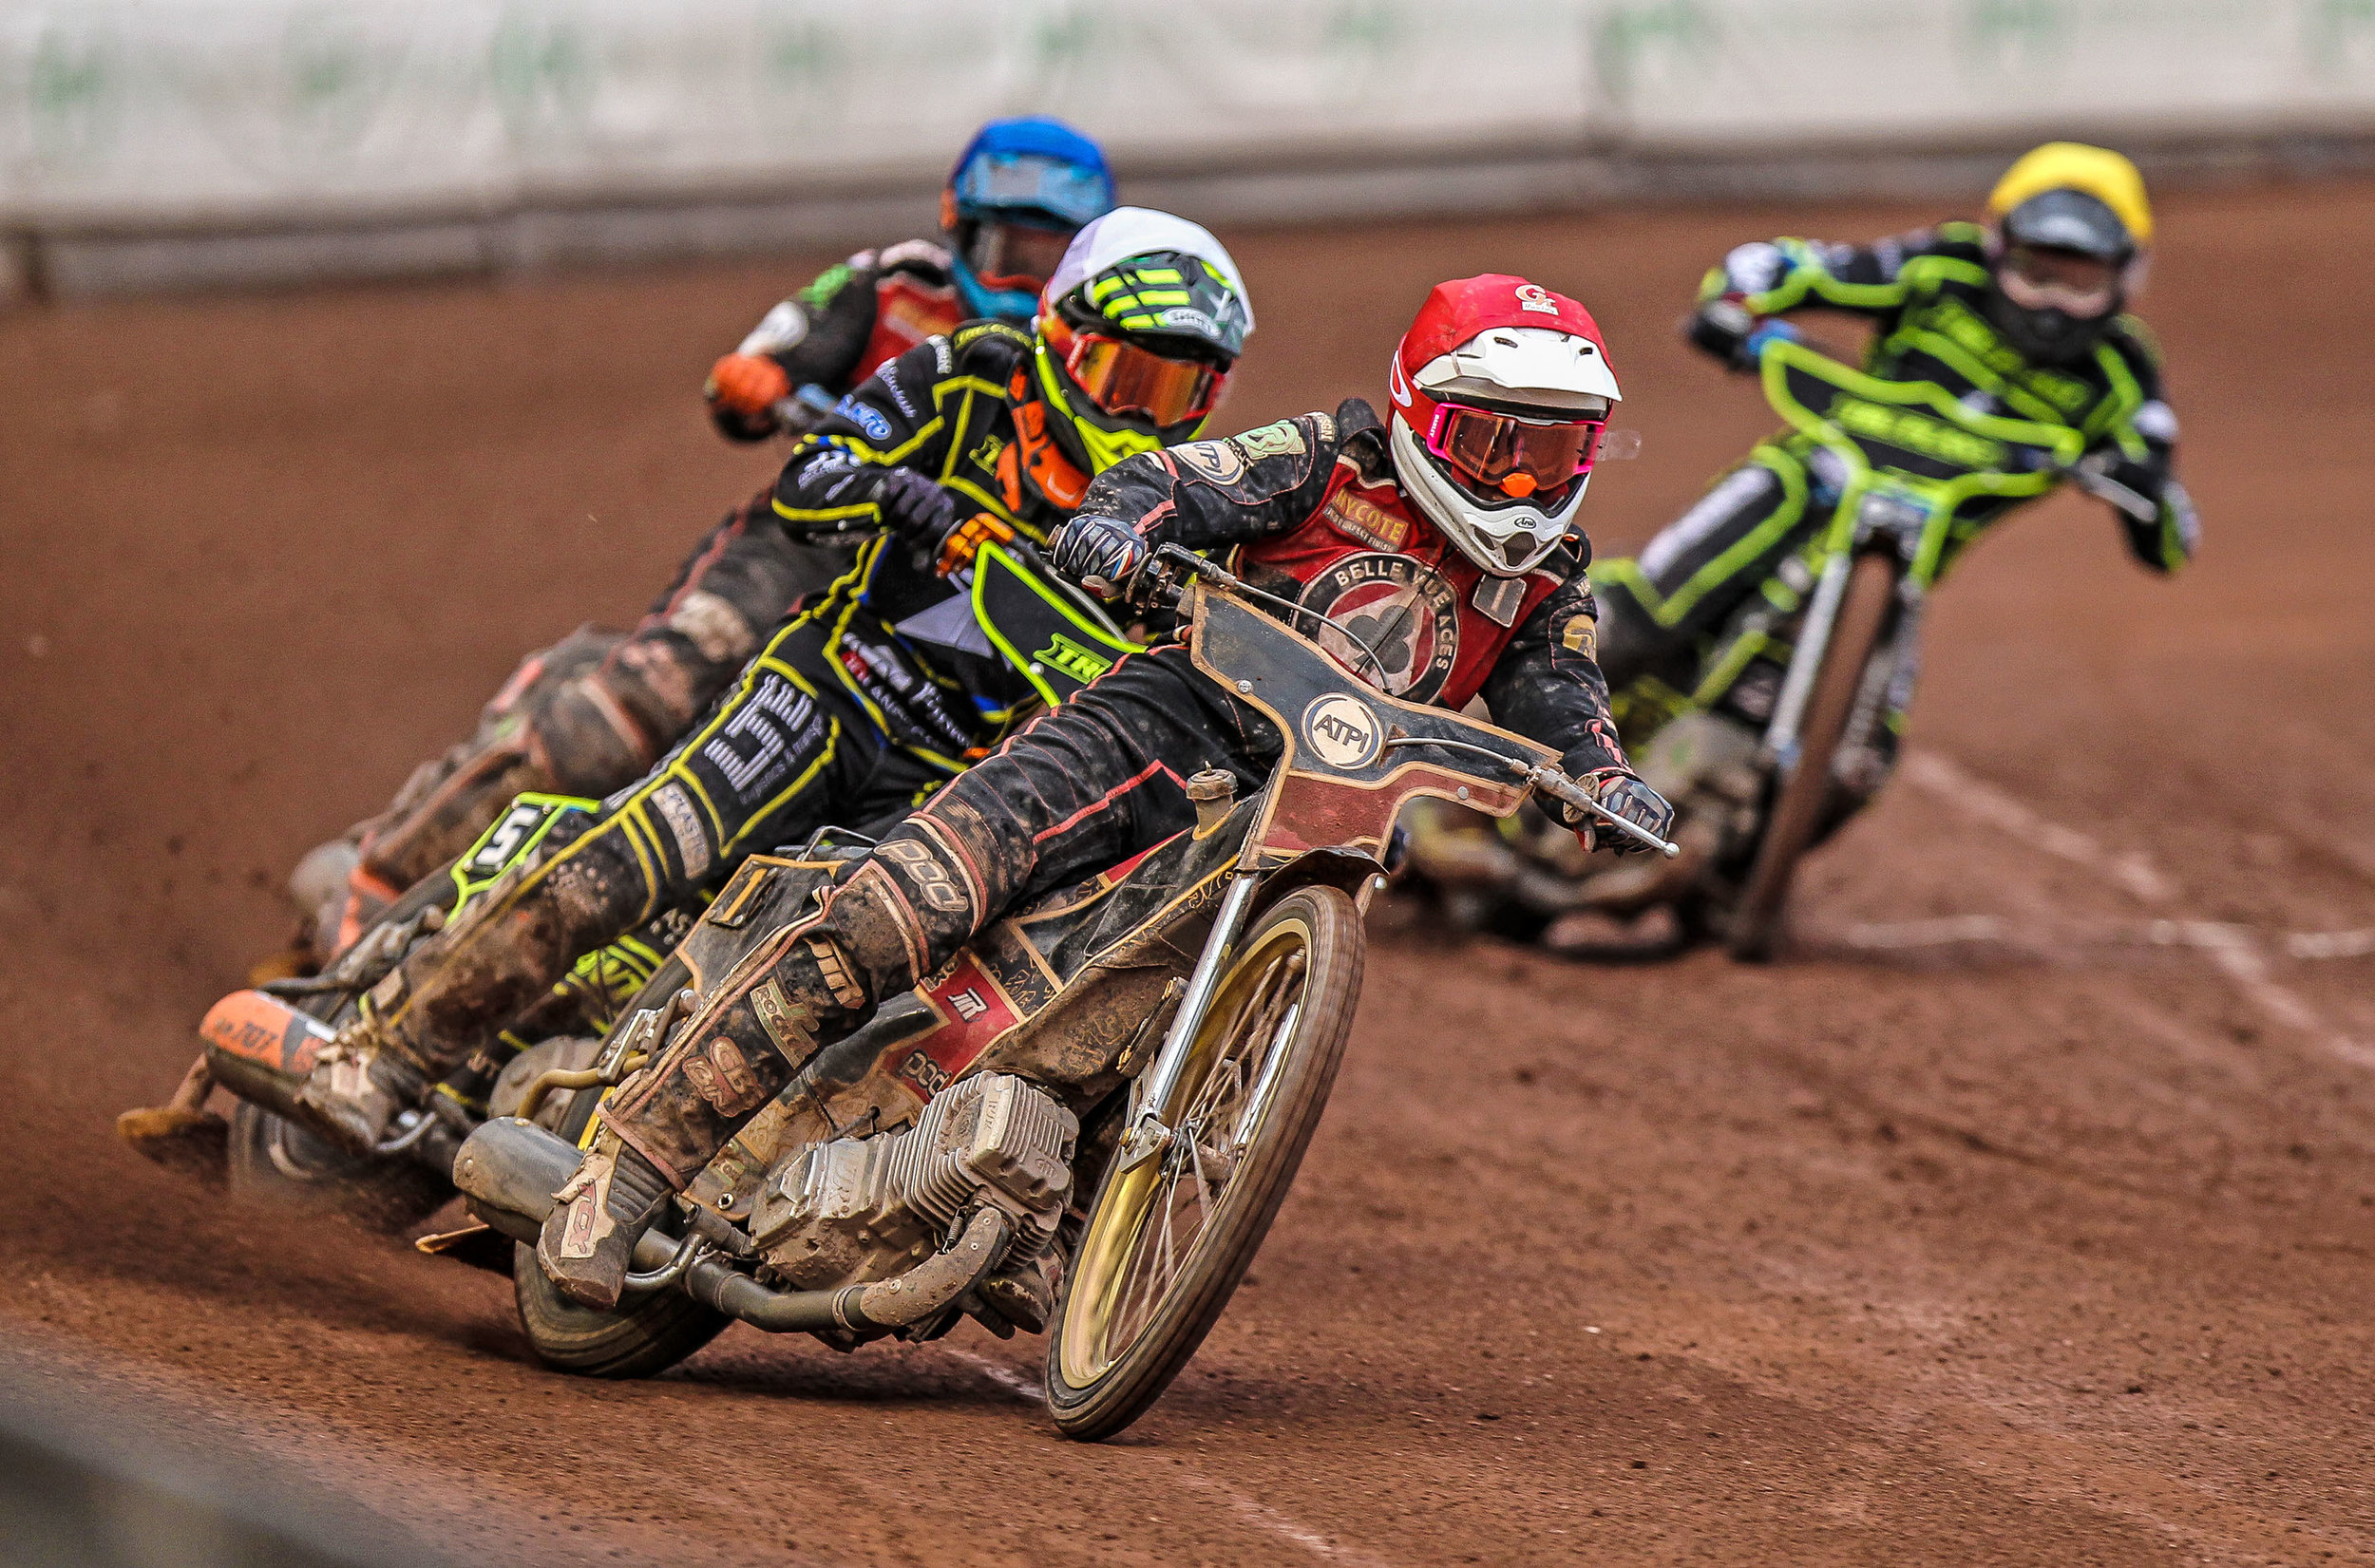 Max Fricke stormed to another unbeaten 15-point maximum